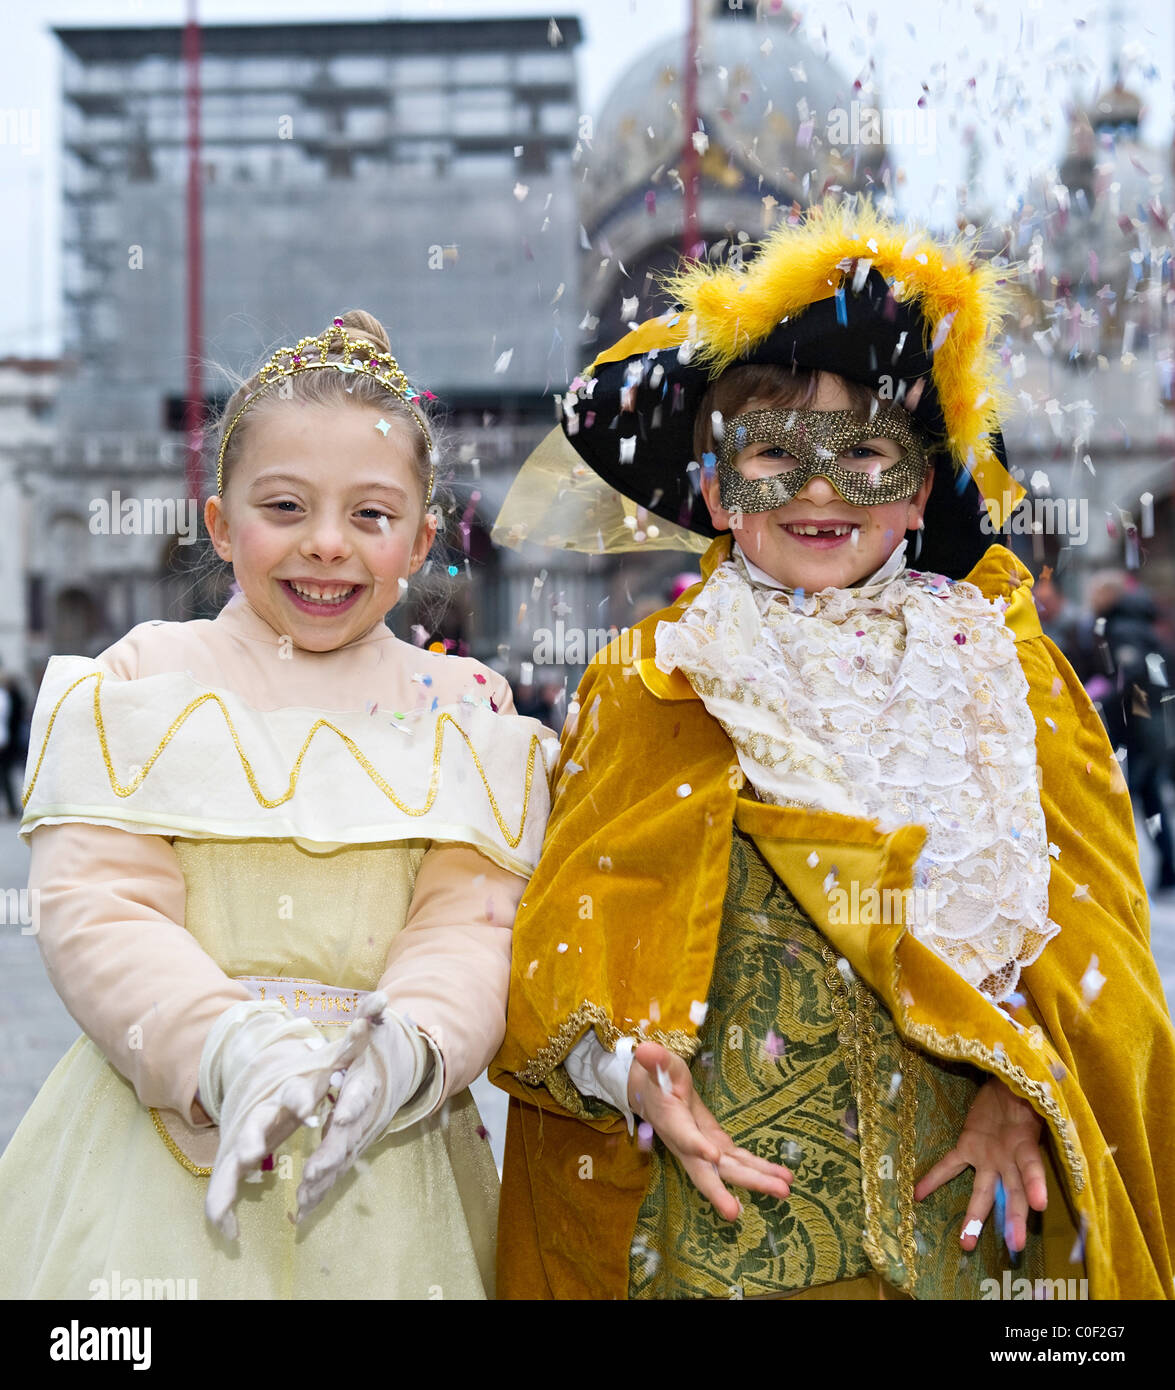 Two children wearing Carnival costumes in St Mark Square Venice Italy  sc 1 st  Alamy & Two children wearing Carnival costumes in St Mark Square Venice ...